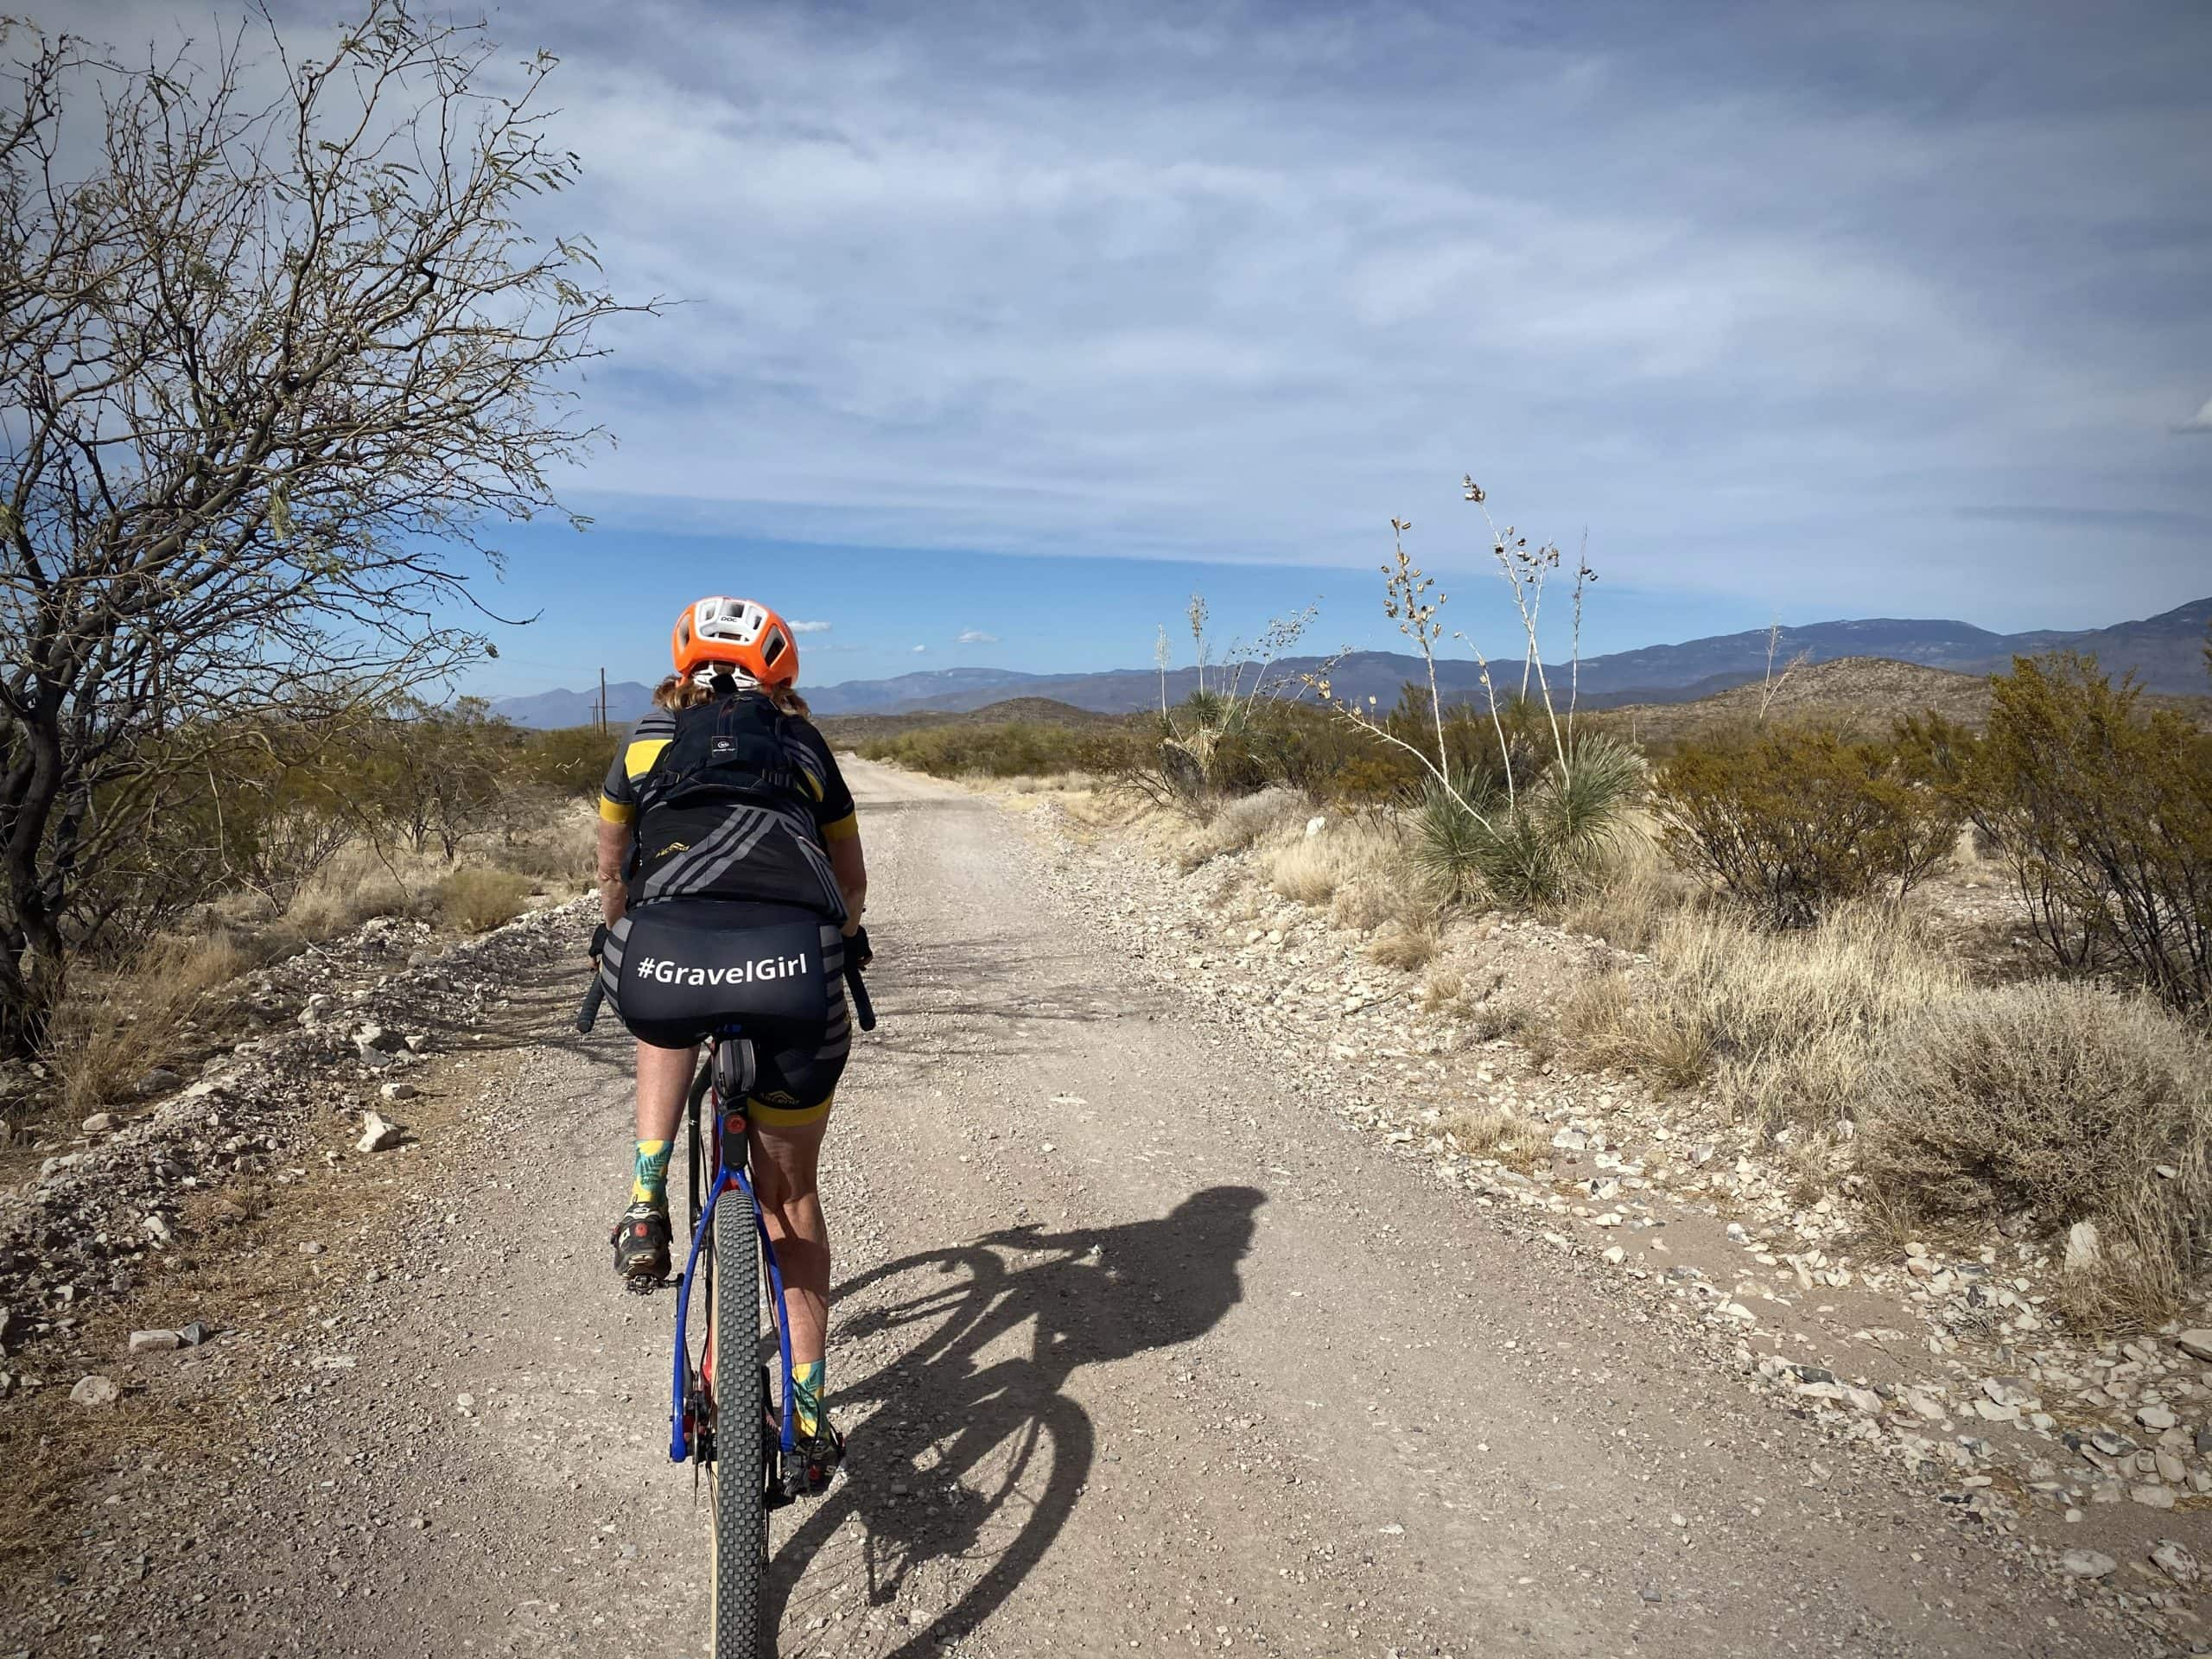 Woman cyclist on gravel road in the Sonoran desert in Arizona.